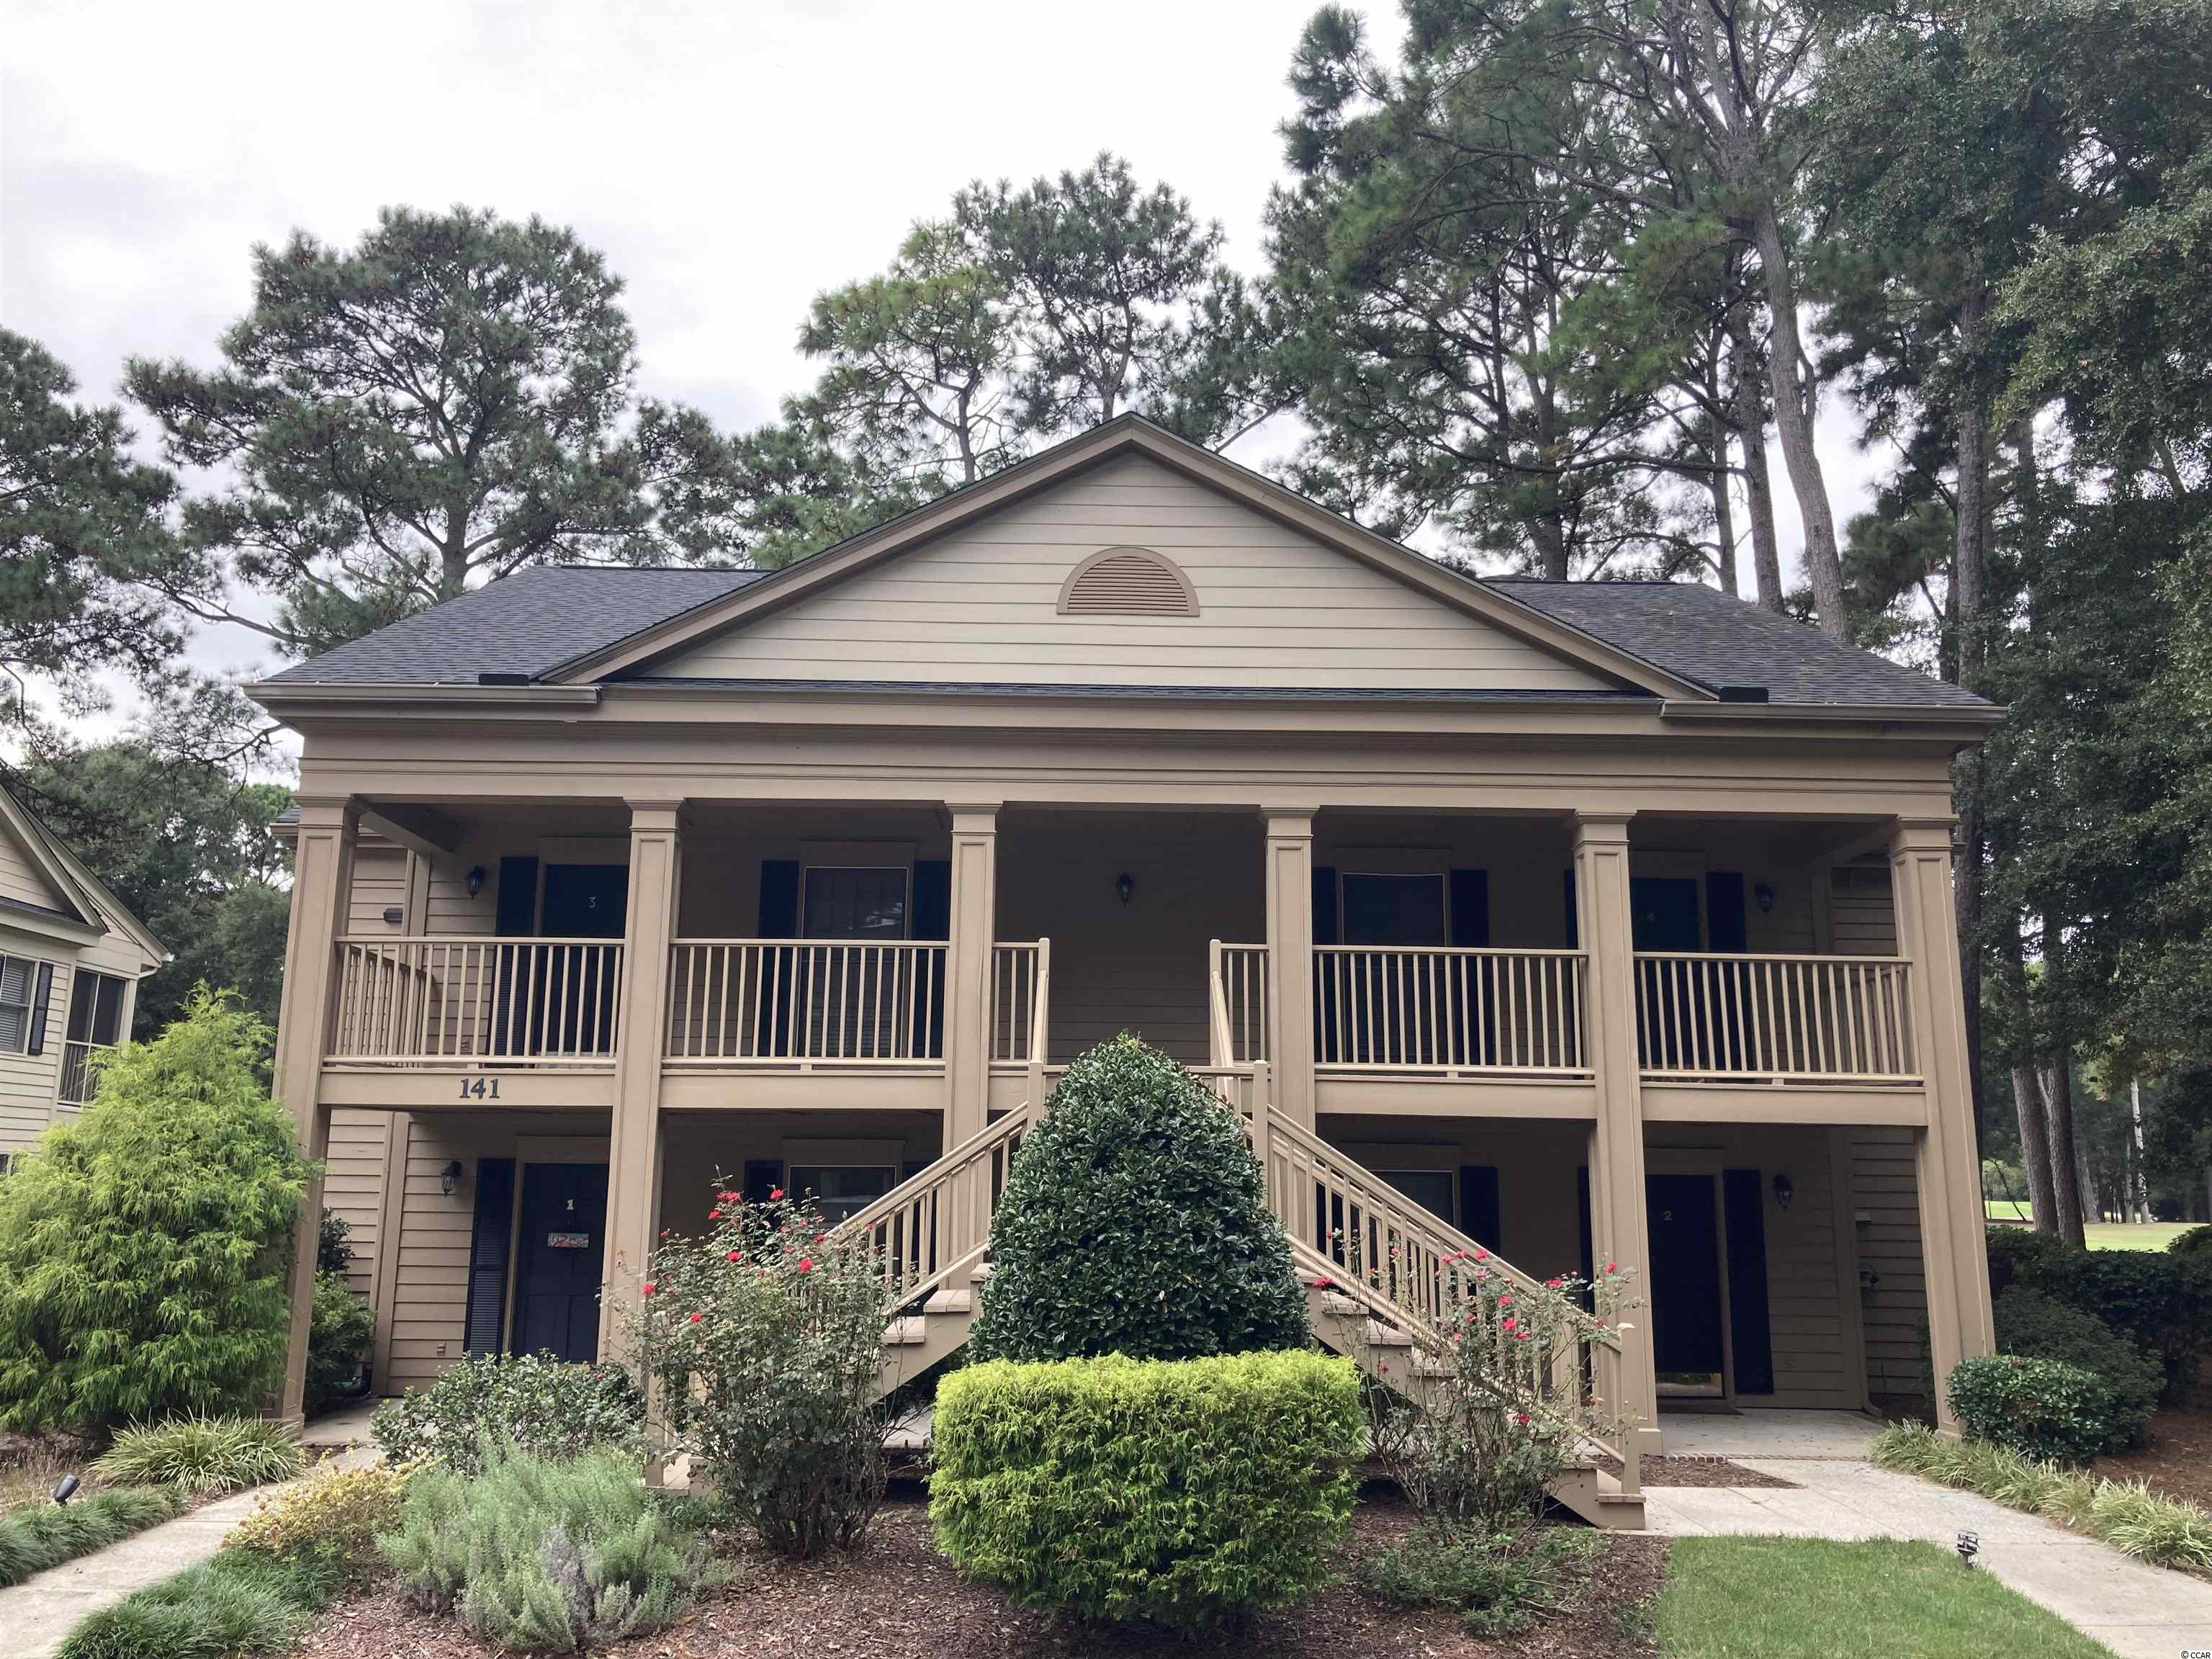 Come check out this well maintained first floor 2 bedroom 2 full bath unit with a lock out bedroom located in Pawleys Plantation's Weehawka Woods. Completely furnished including linens, this unit is move in ready for you and your family. Overlooking the tenth hole with a private screened in porch and walking distance to the pool, clubhouse and driving range. This condo has a rental history over the last two years and has tentative reservations for 2022. Just minutes from Pawleys Island beach, local restaurants and businesses. This won't last long.